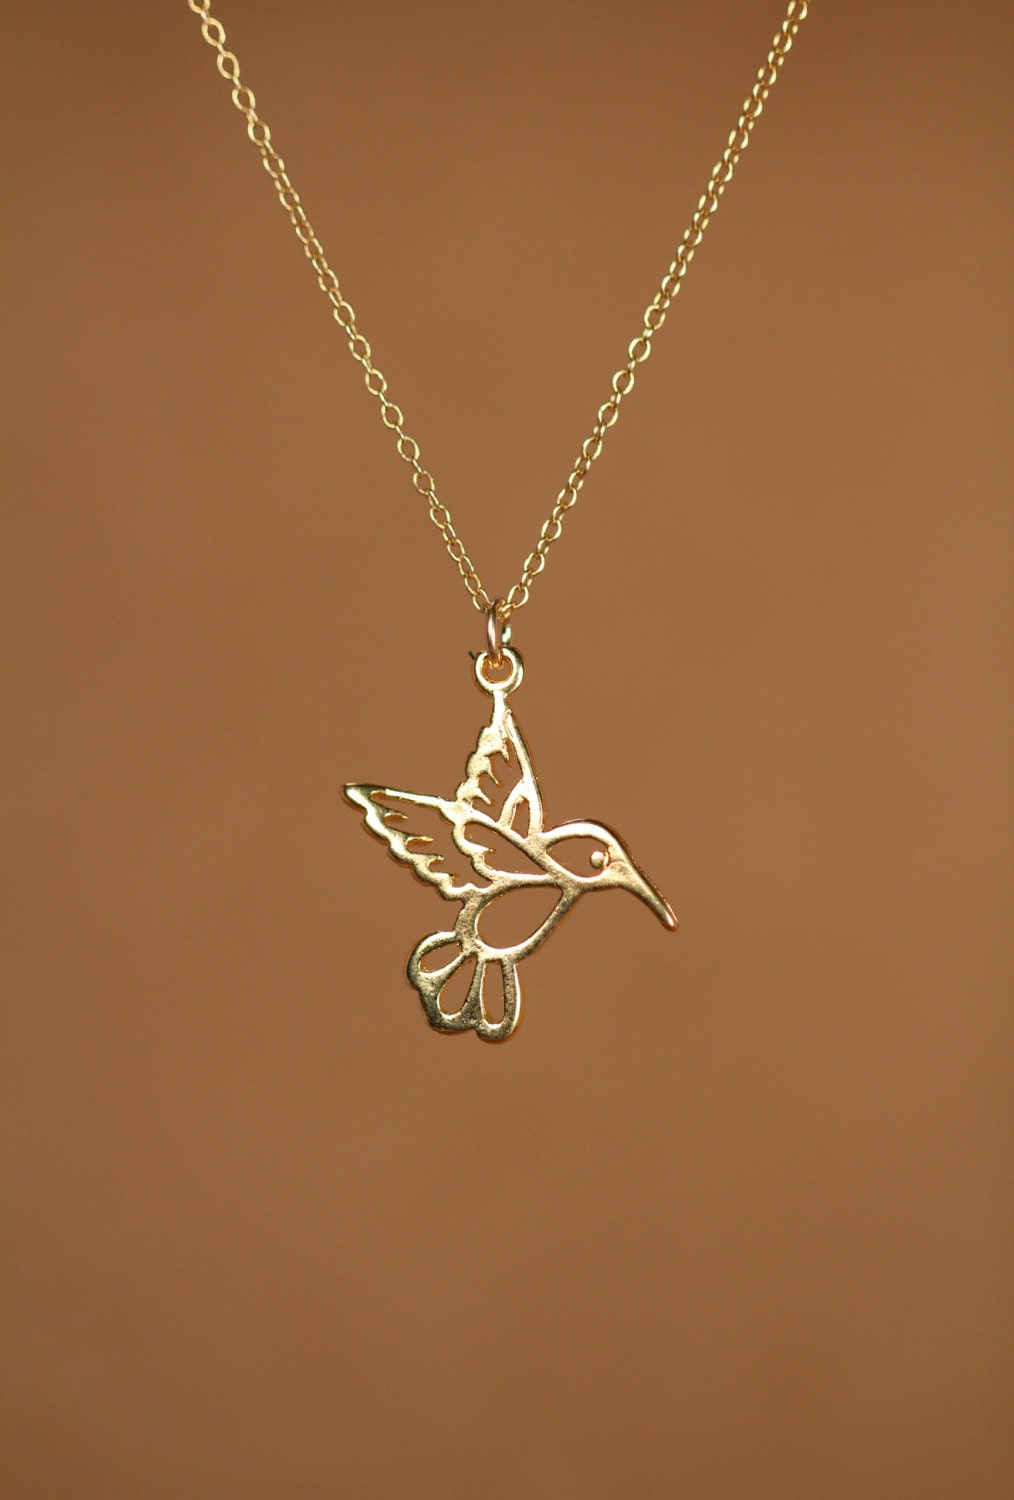 bird jewelry humming bird necklace gold hummingbird necklace silver 9448